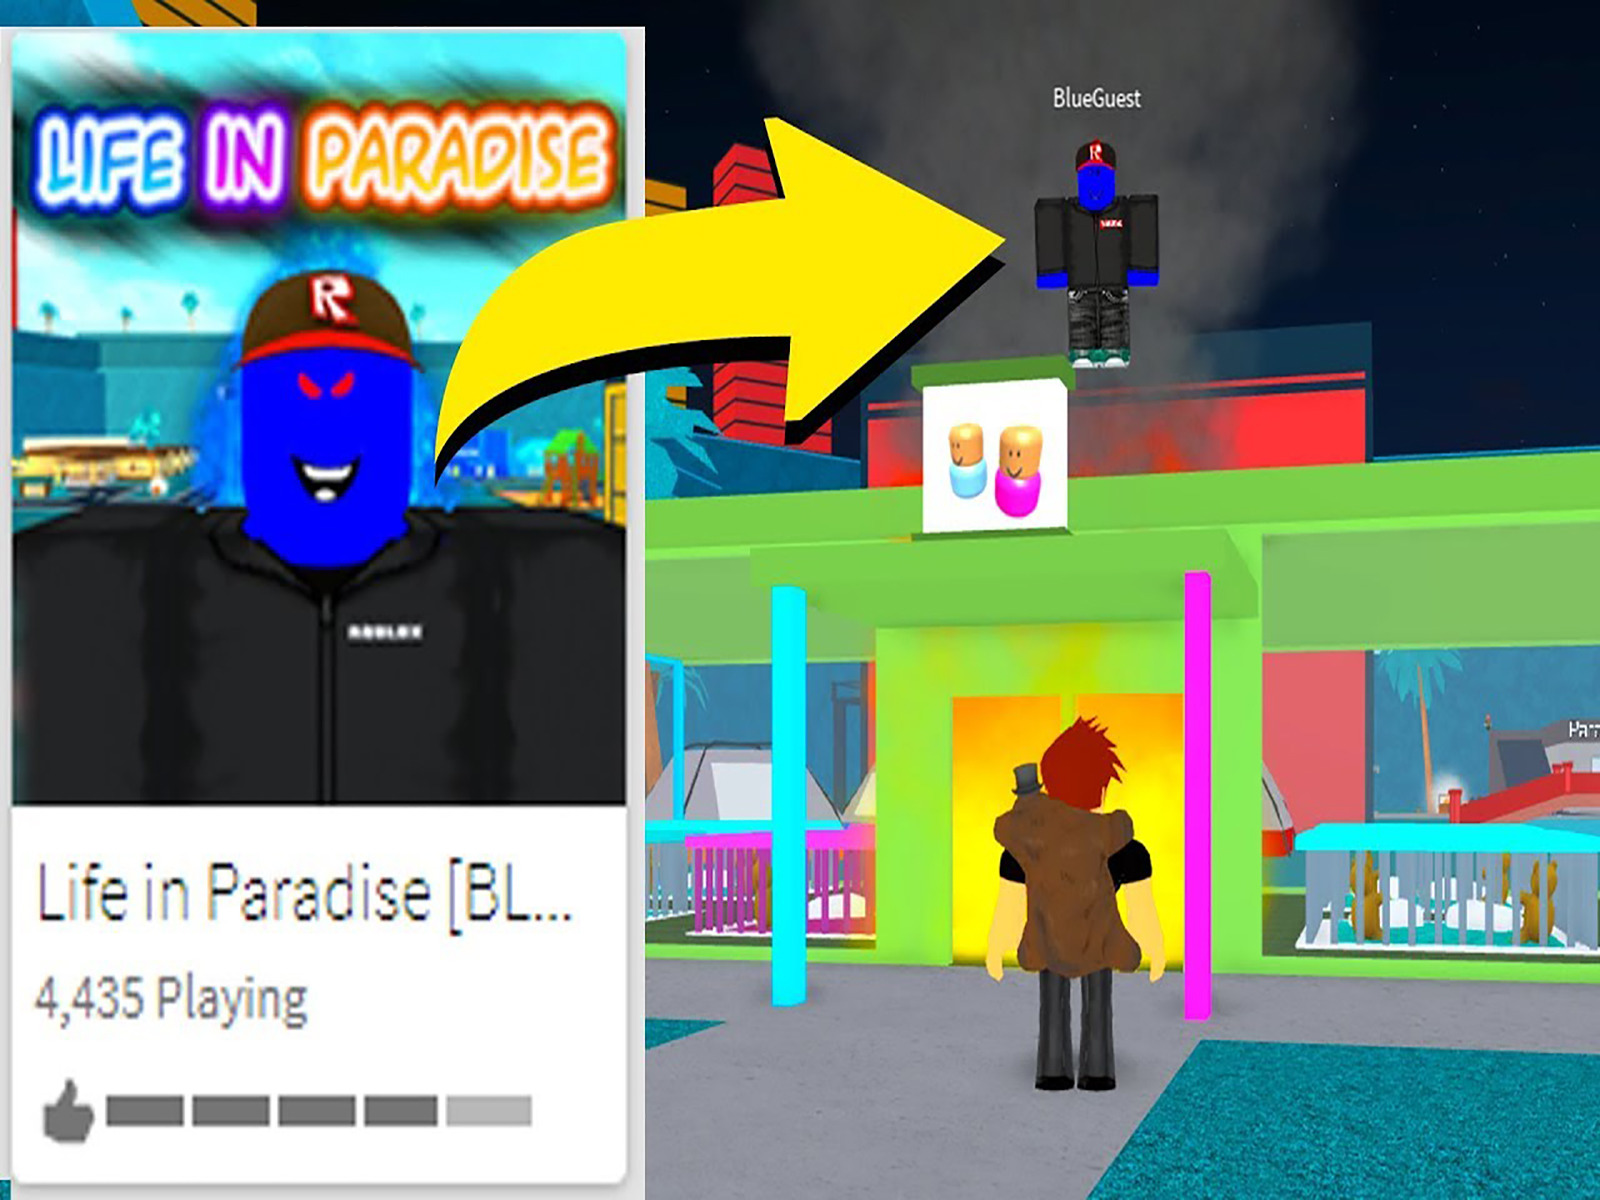 How To Use Admin Commands In Roblox Life In Paradise 2